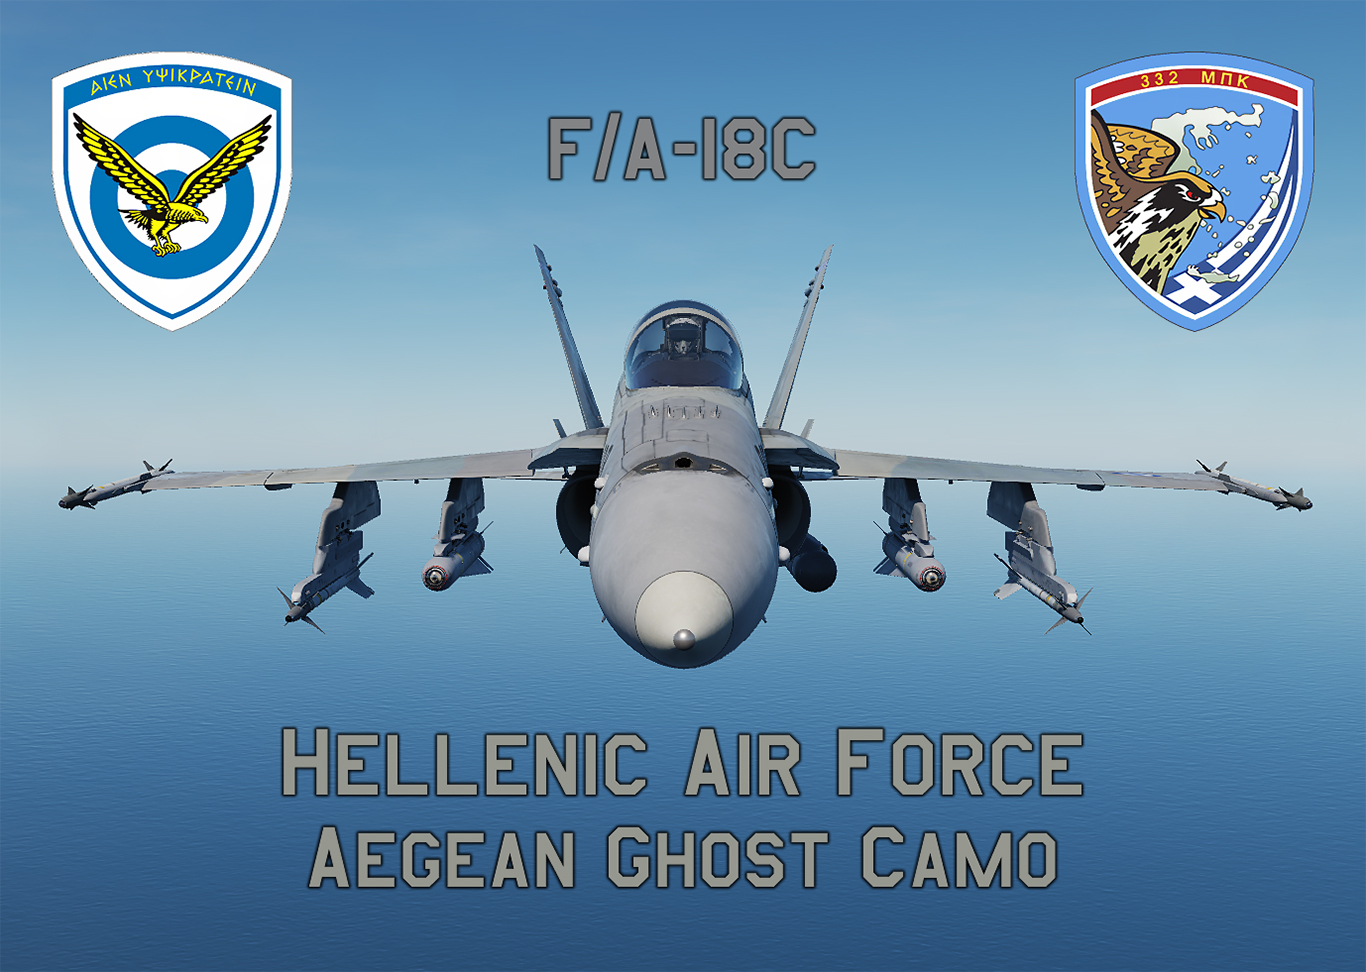 F/A-18C Aegean Ghost Fictional